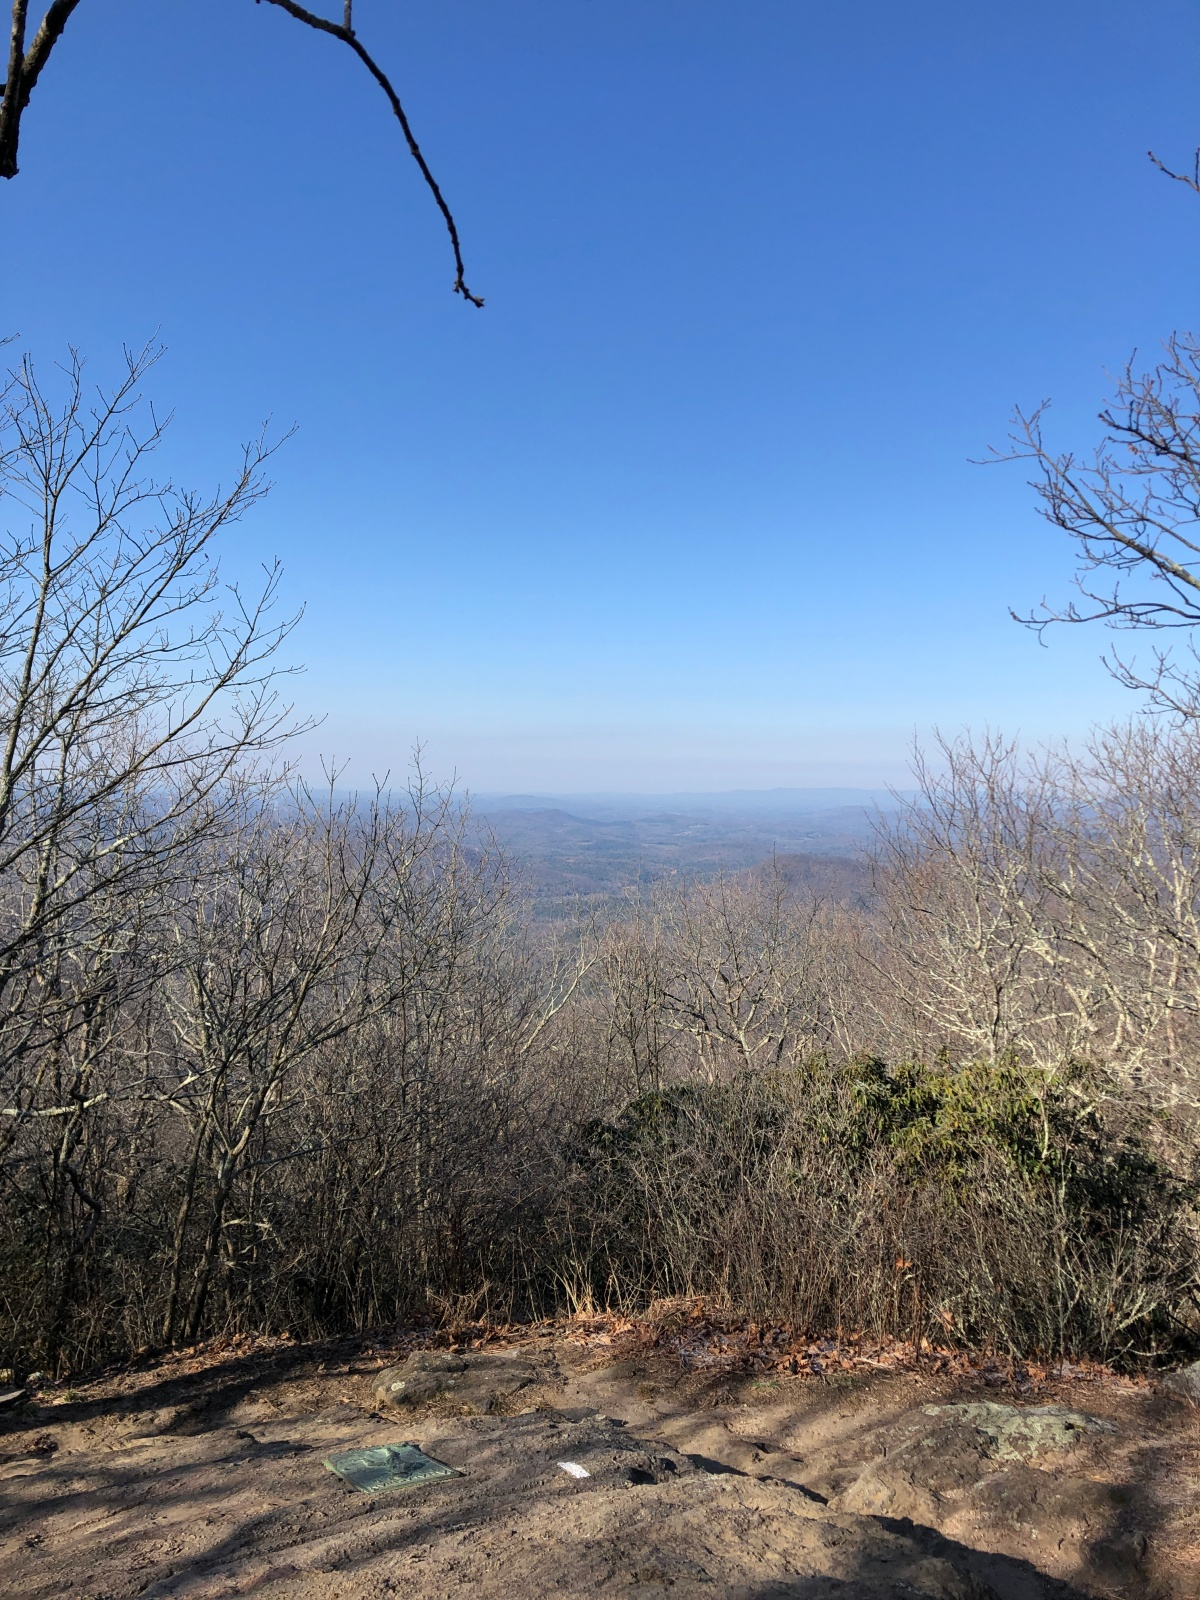 The view from Springer Mountain